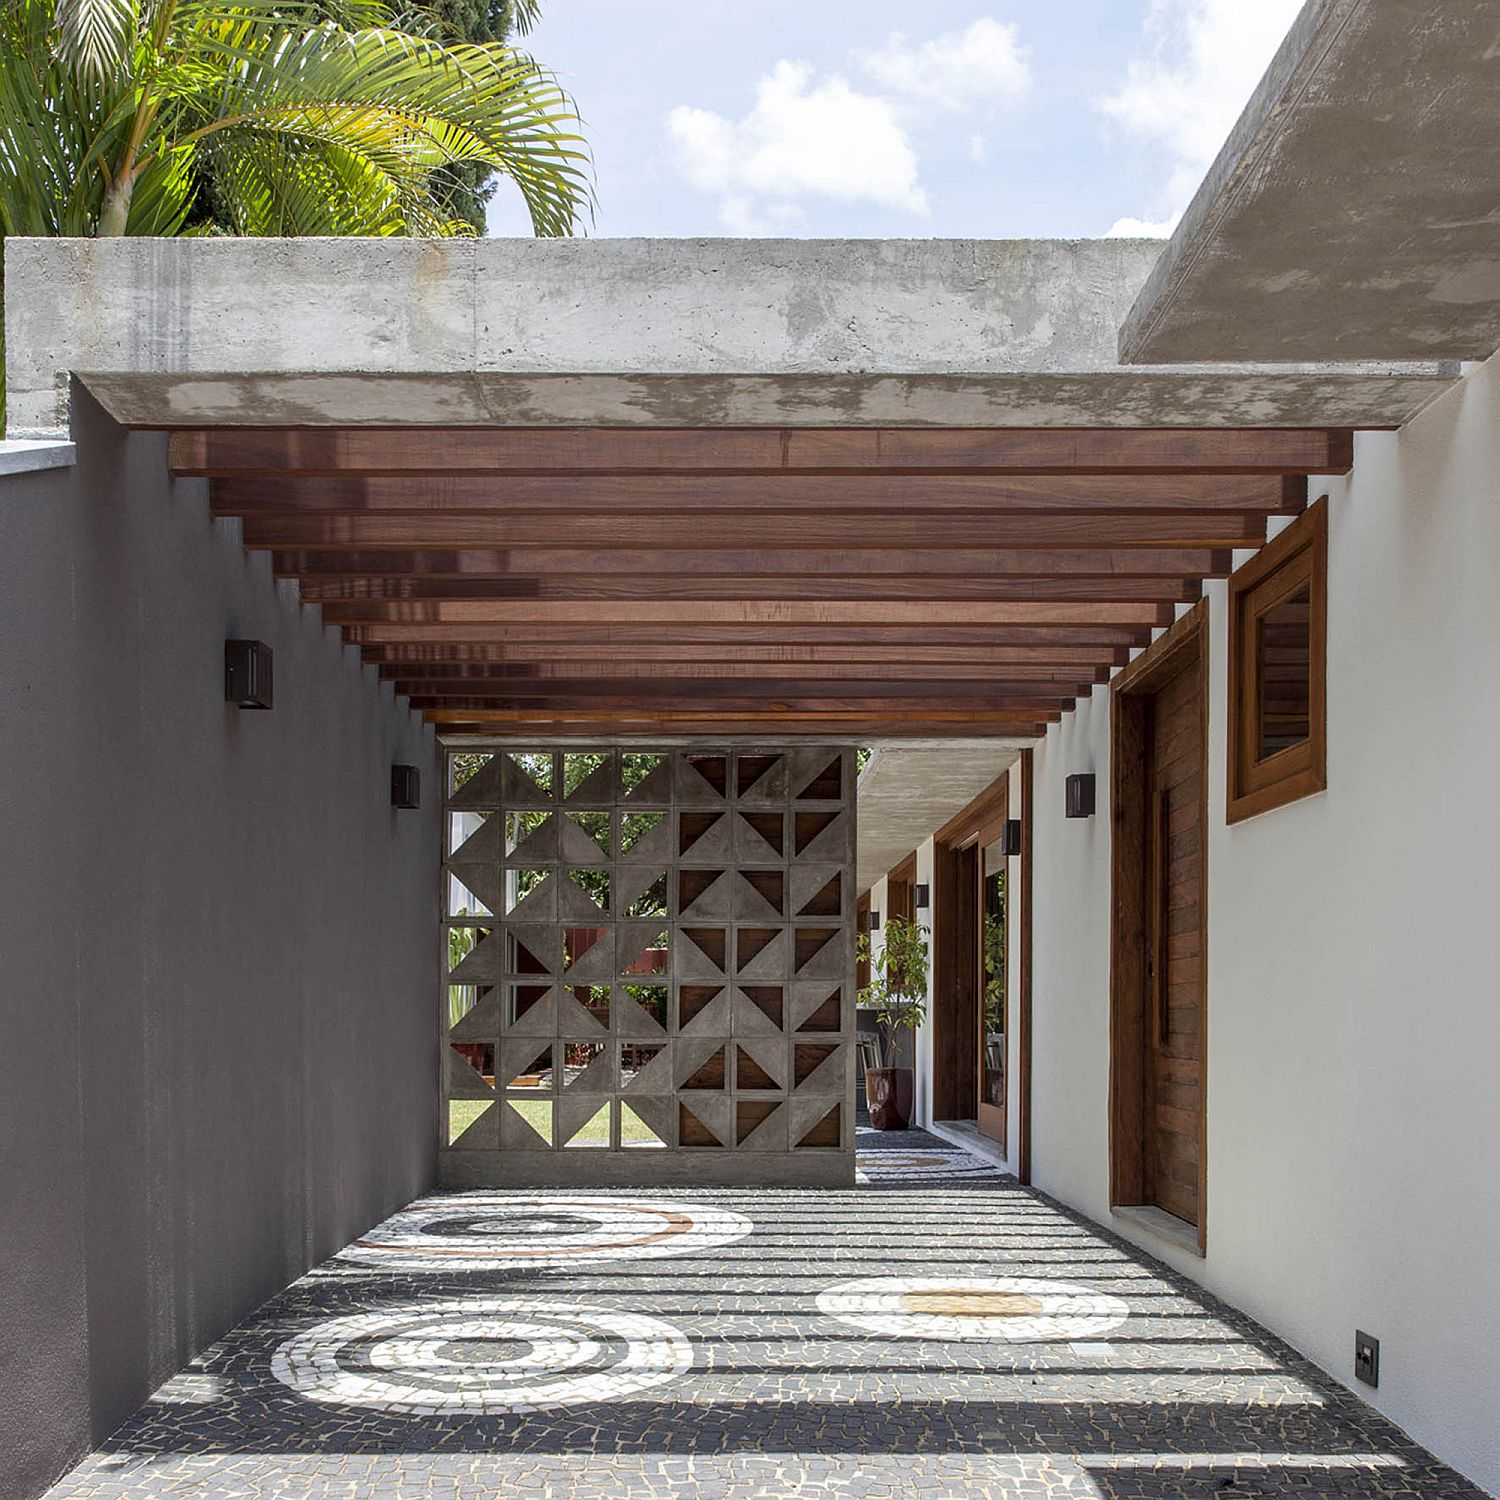 Series-of-wooden-beams-provides-a-simple-pergola-structure